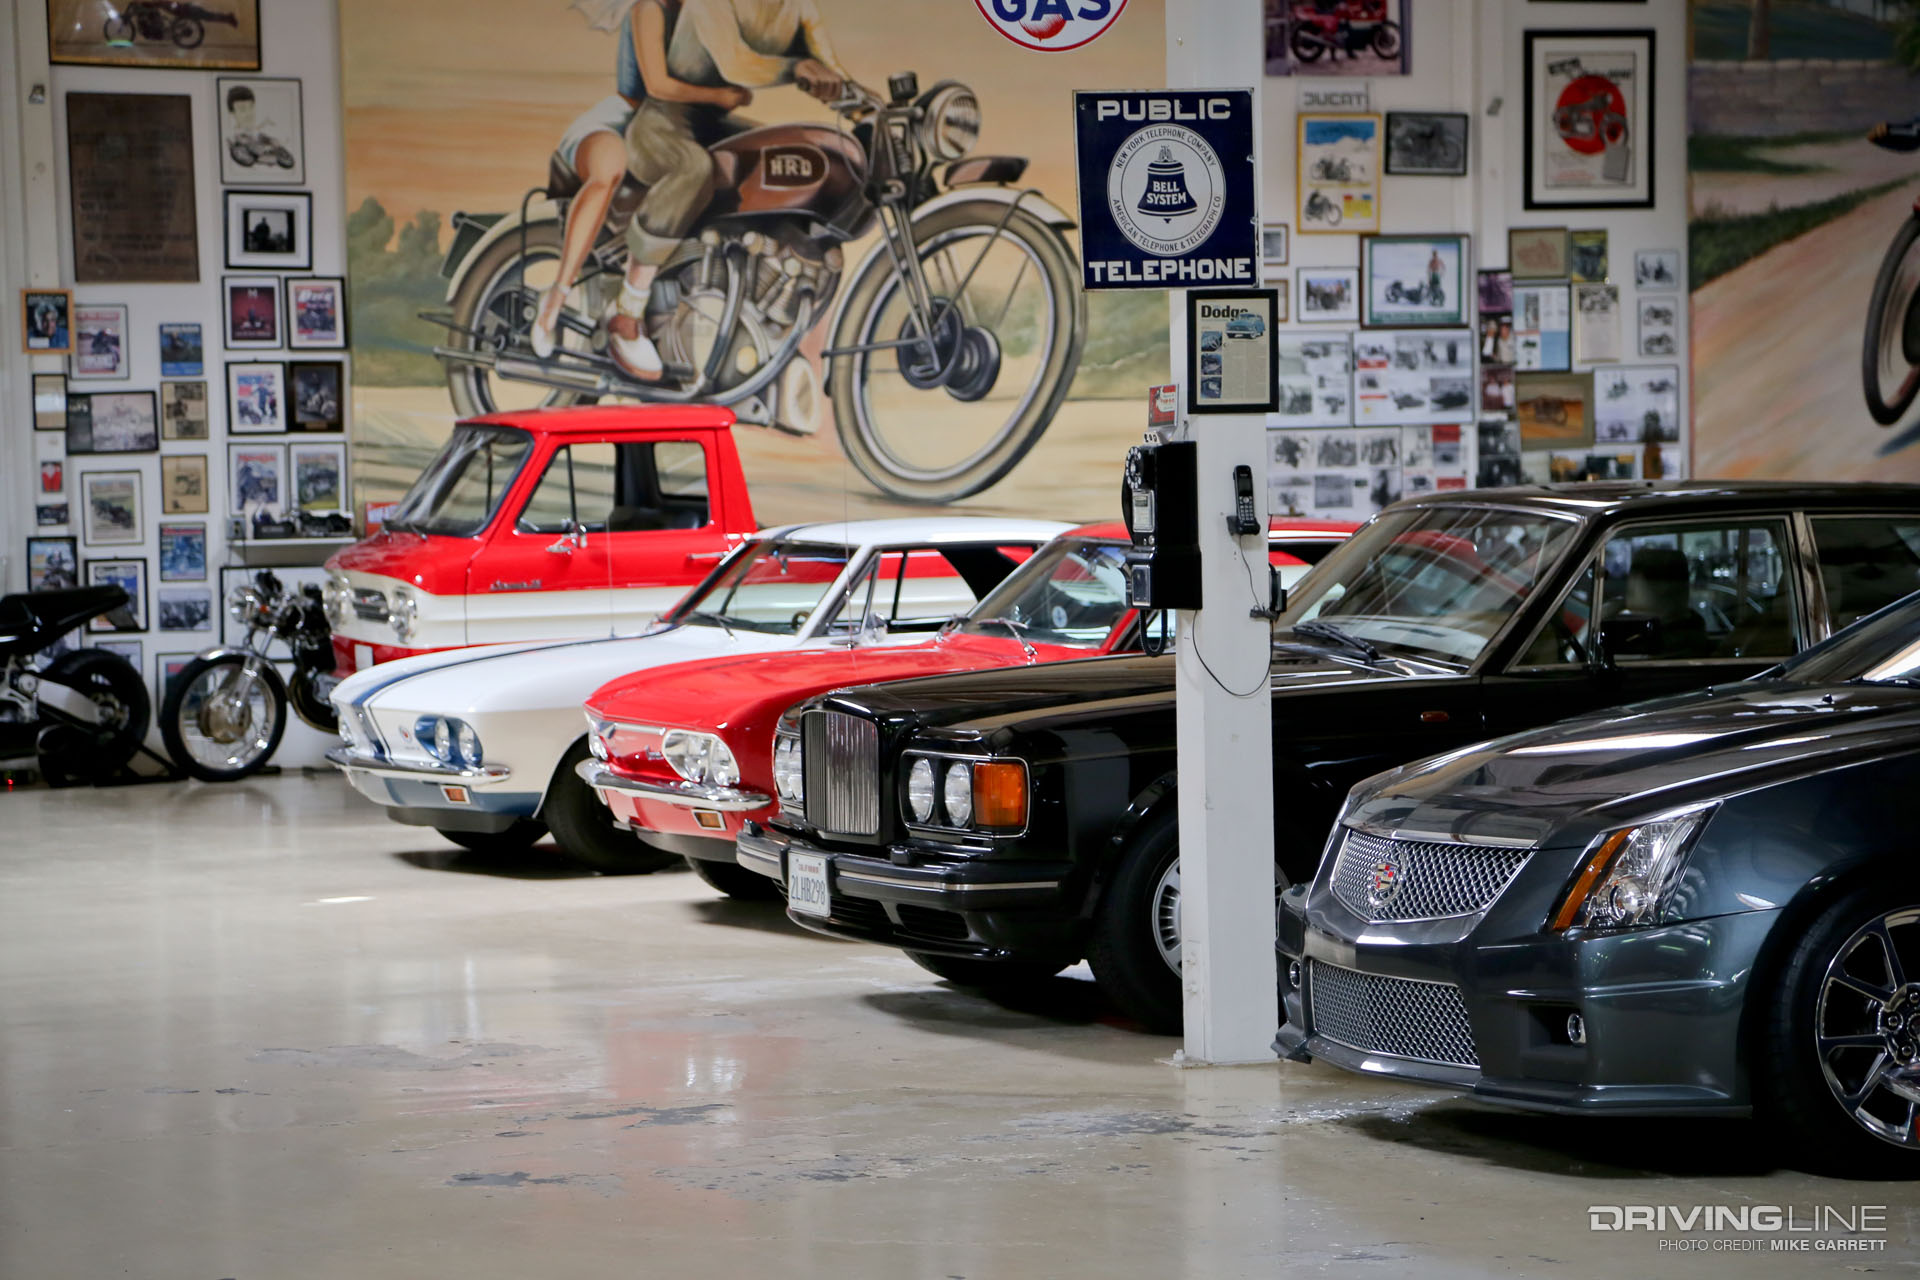 Jay Leno Garage : Things that may surprise you if you visit jay leno s garage